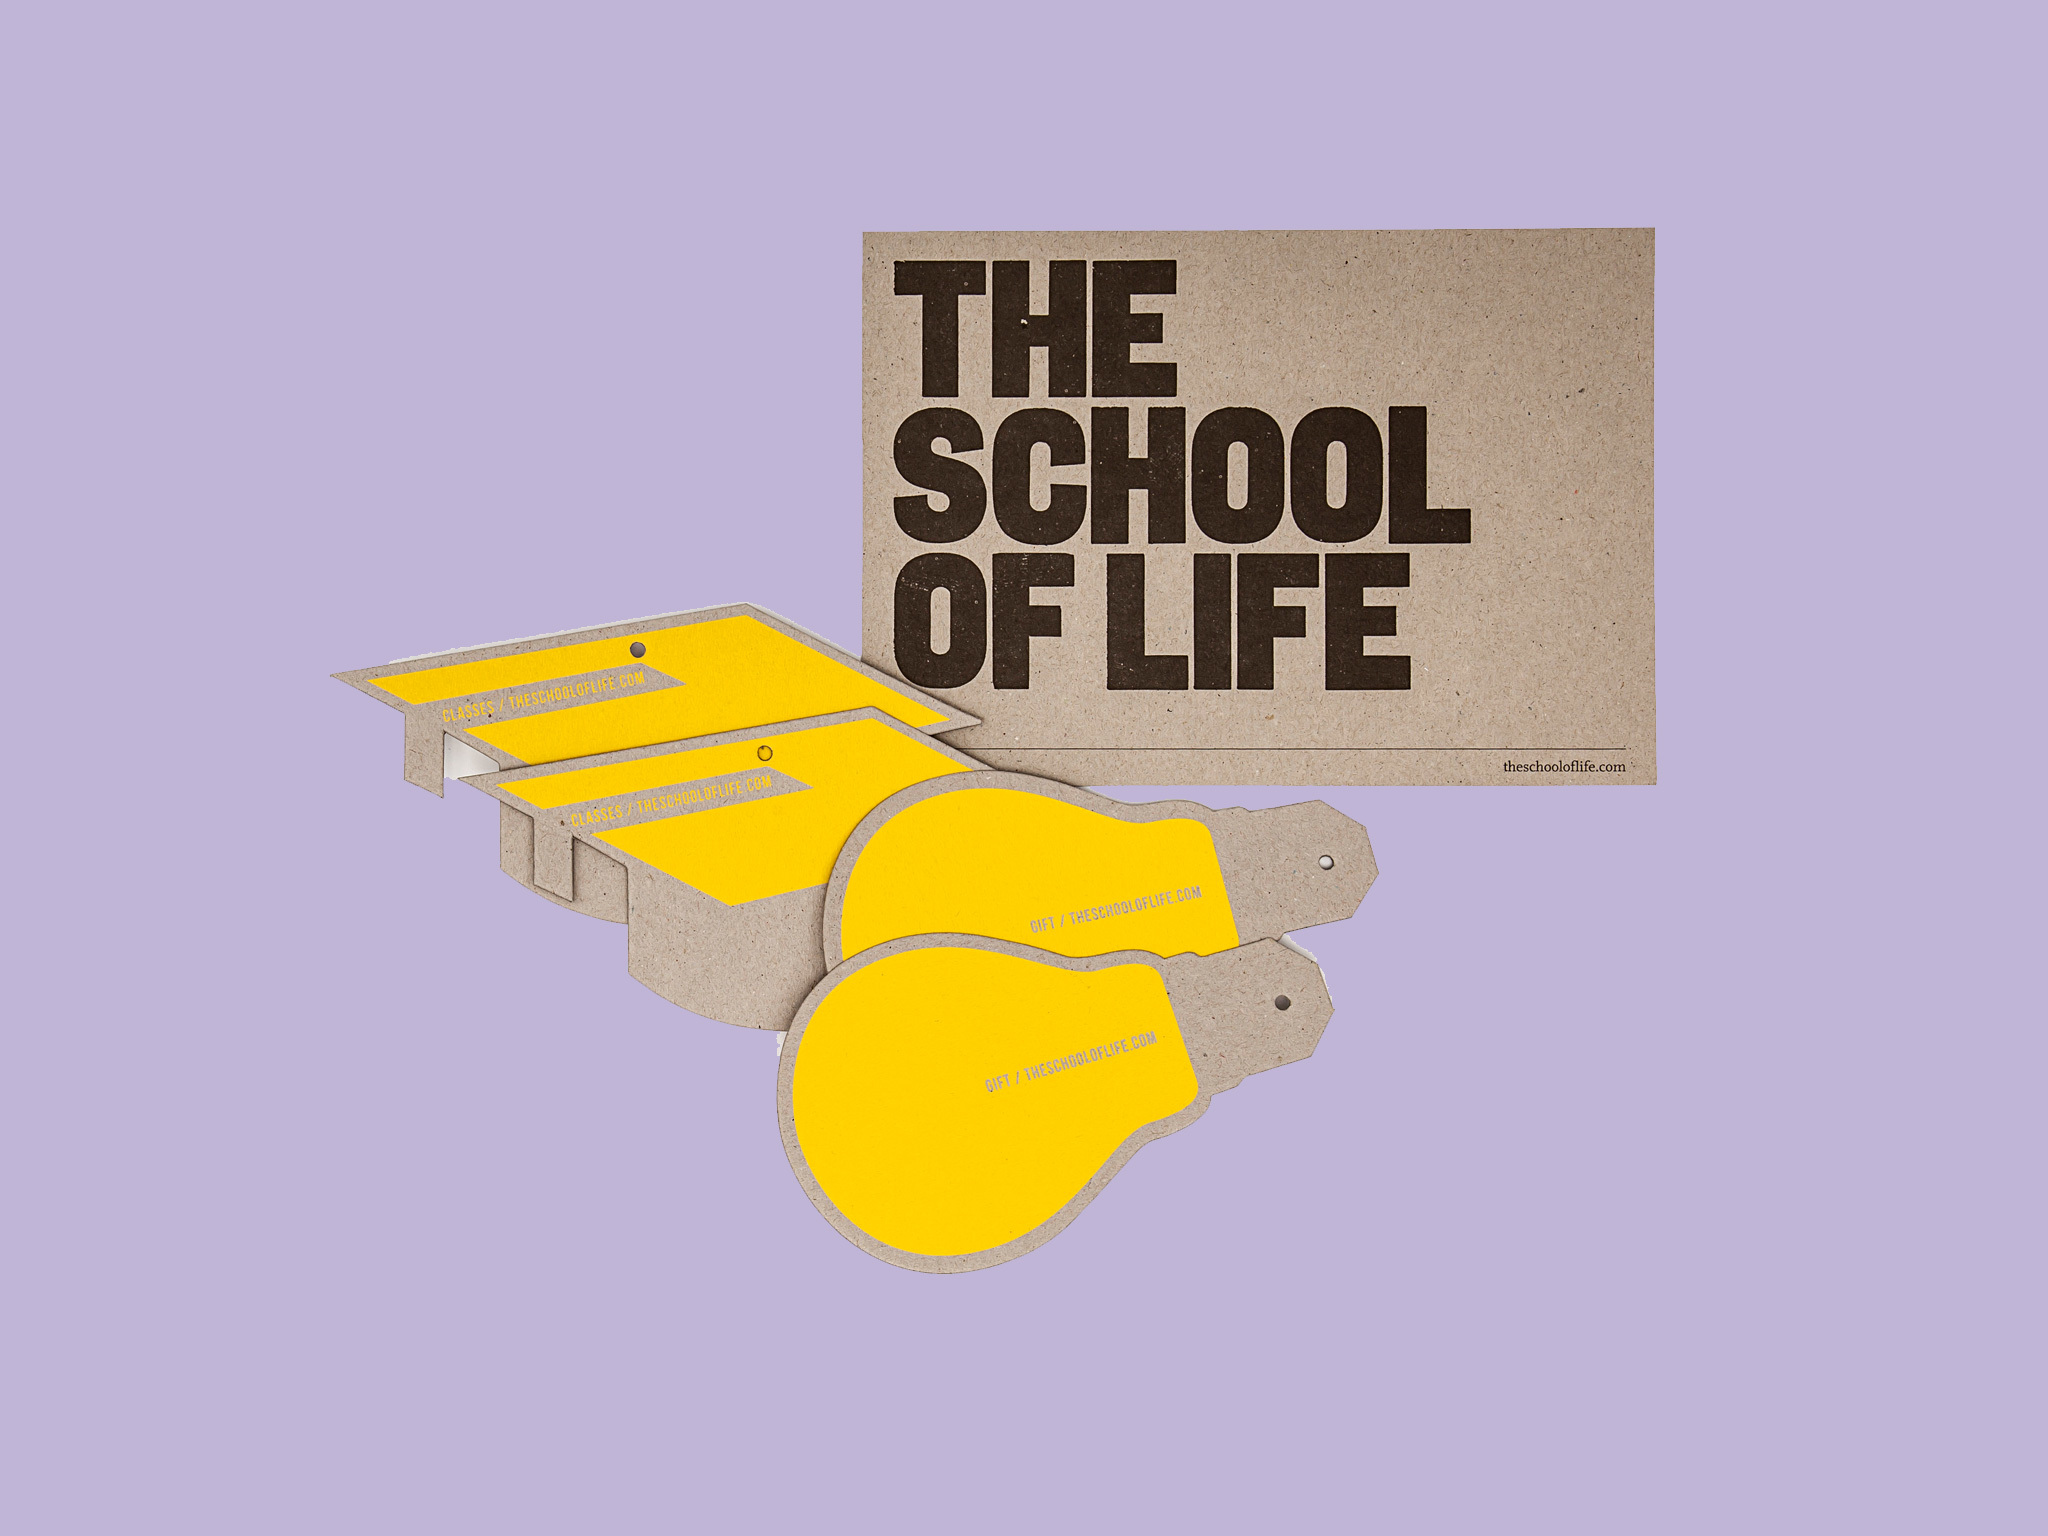 Christmas gift guide: postable presents  - school of life vouchers